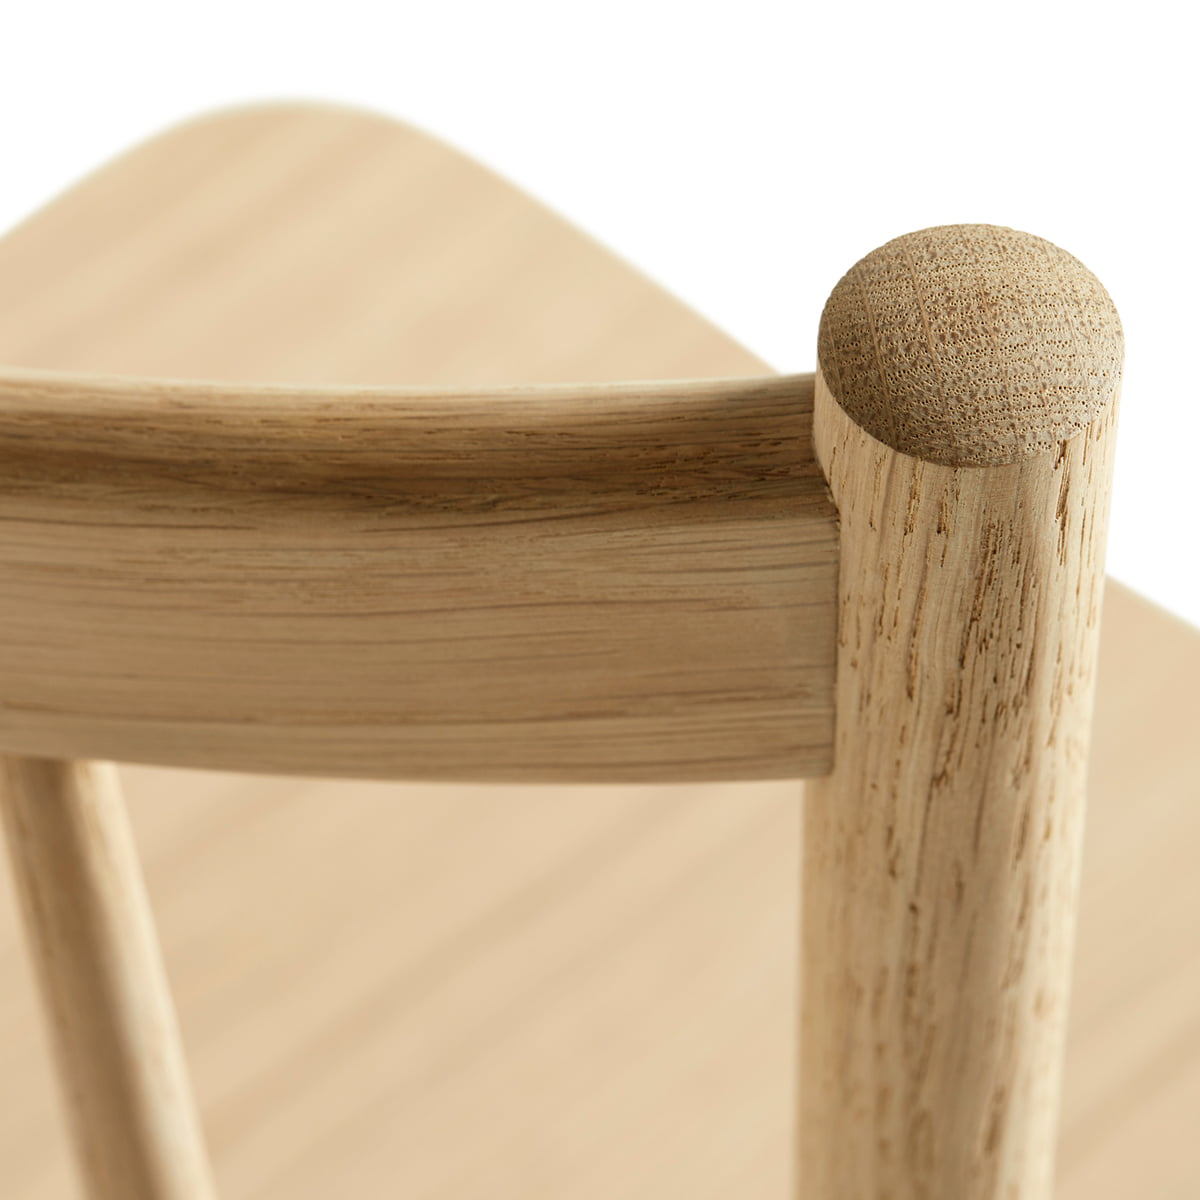 J42 Chair by Hay | Connox